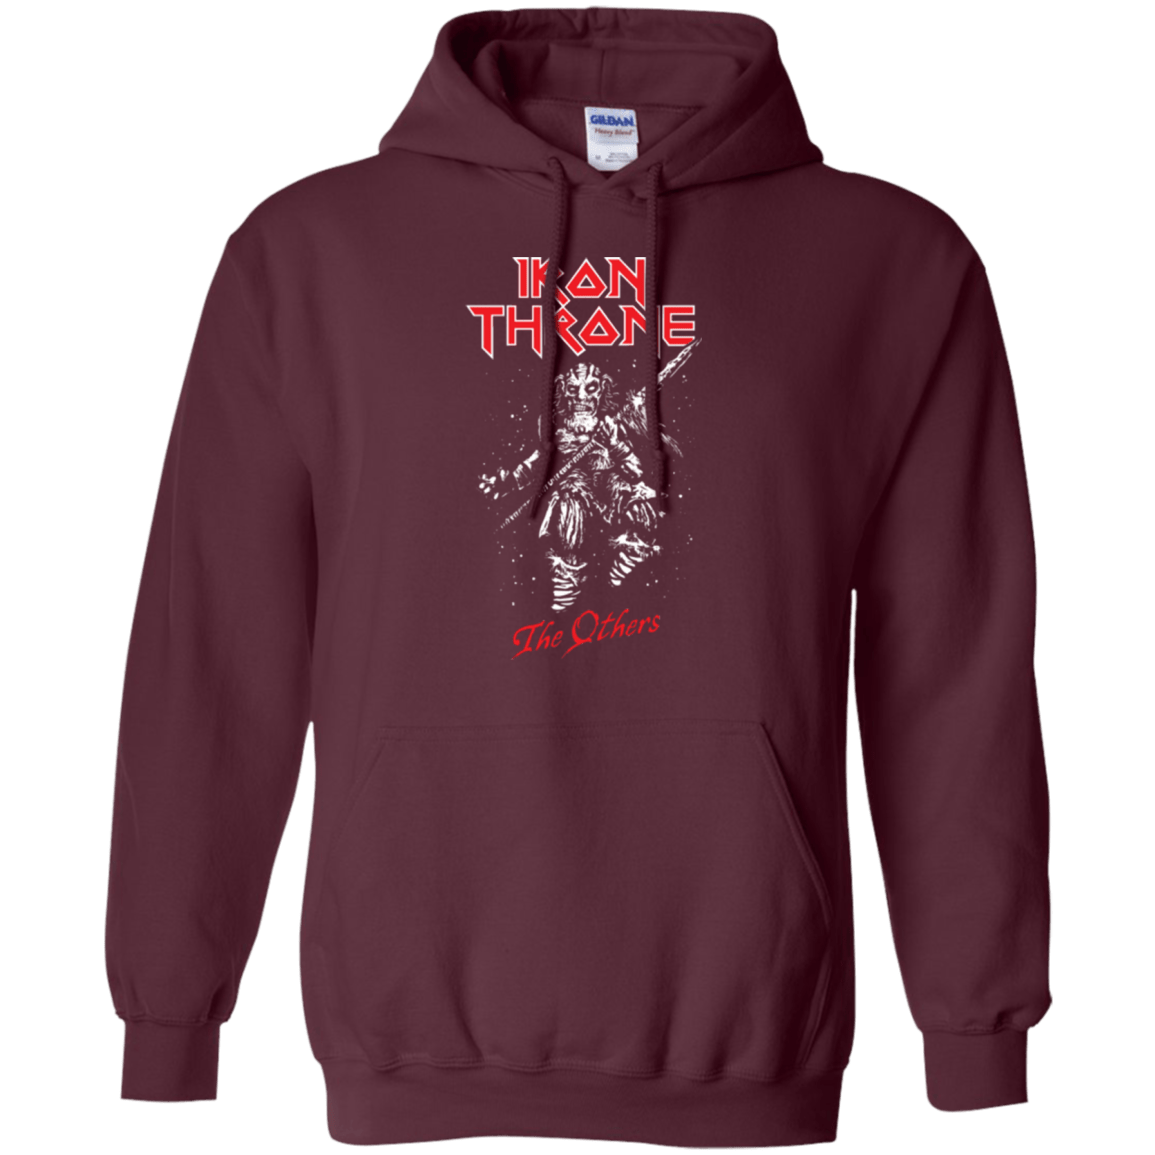 Sweatshirts Maroon / Small Iron Throne Pullover Hoodie